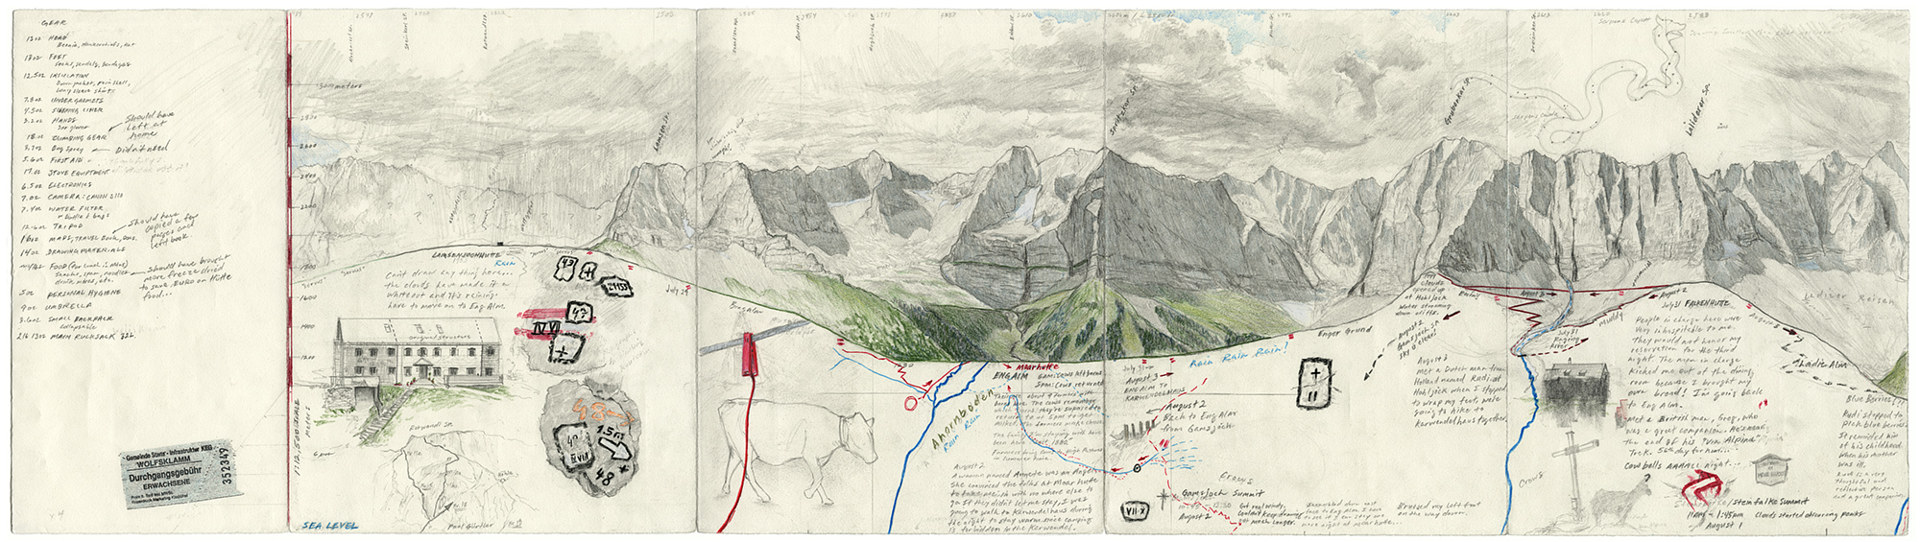 Drawing Detail: Nordwande Karwendel, Field Drawing, Ost (East) by Matthew Rangel